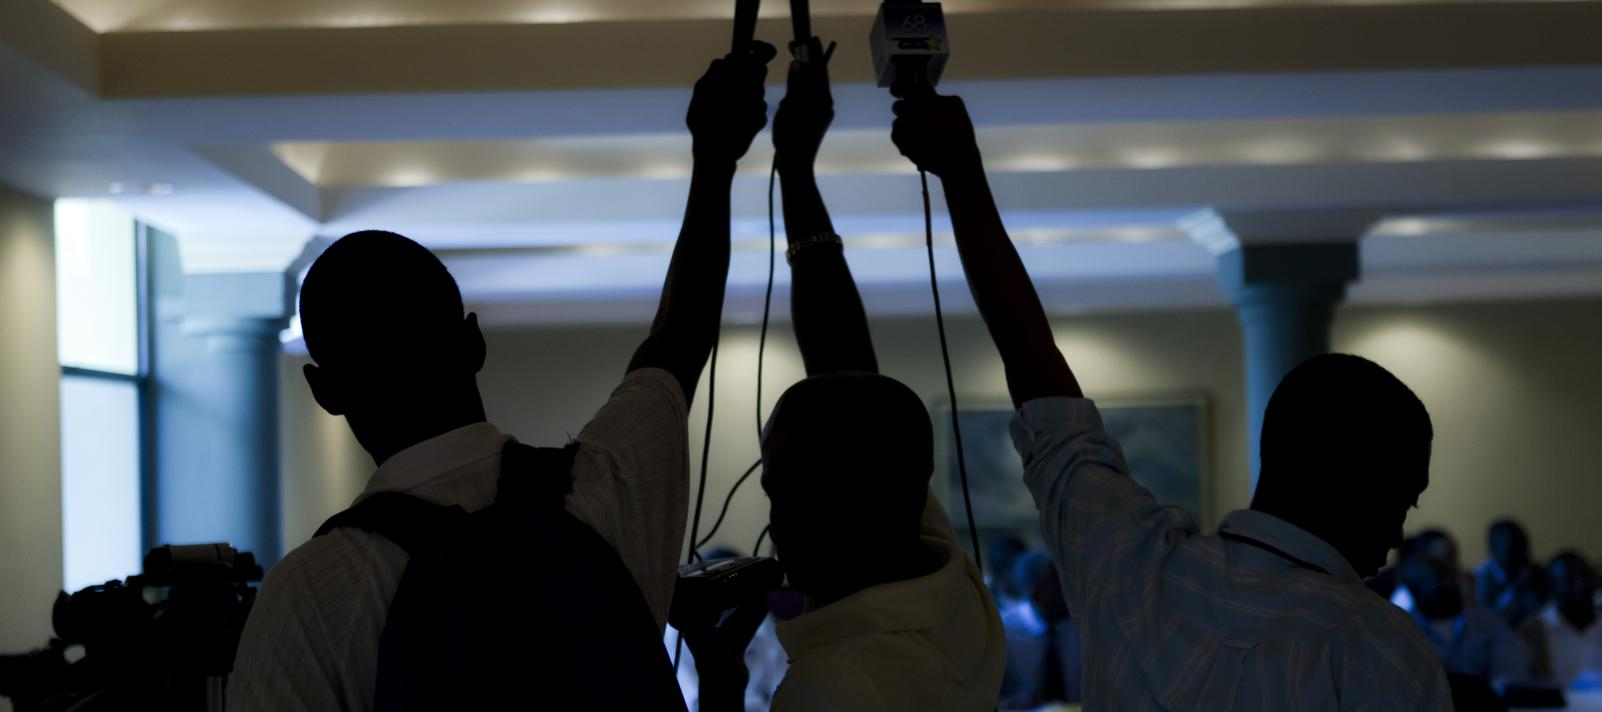 Journalists hold up microphones to record a speech in a press conference